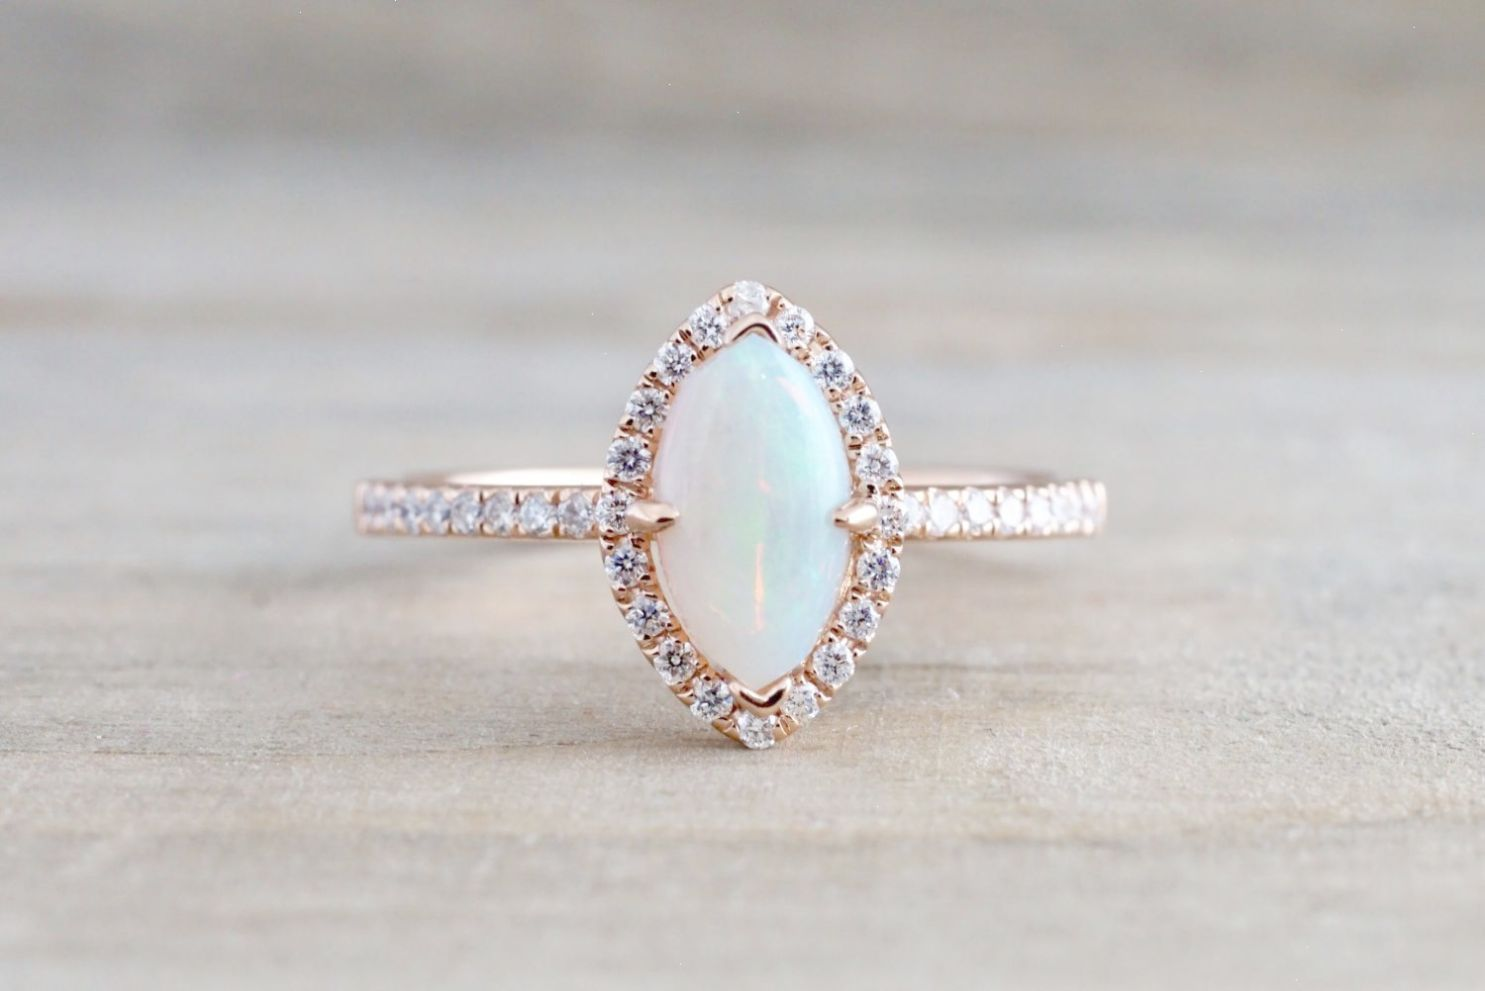 unique weddingbee engagement rings of any stoneless